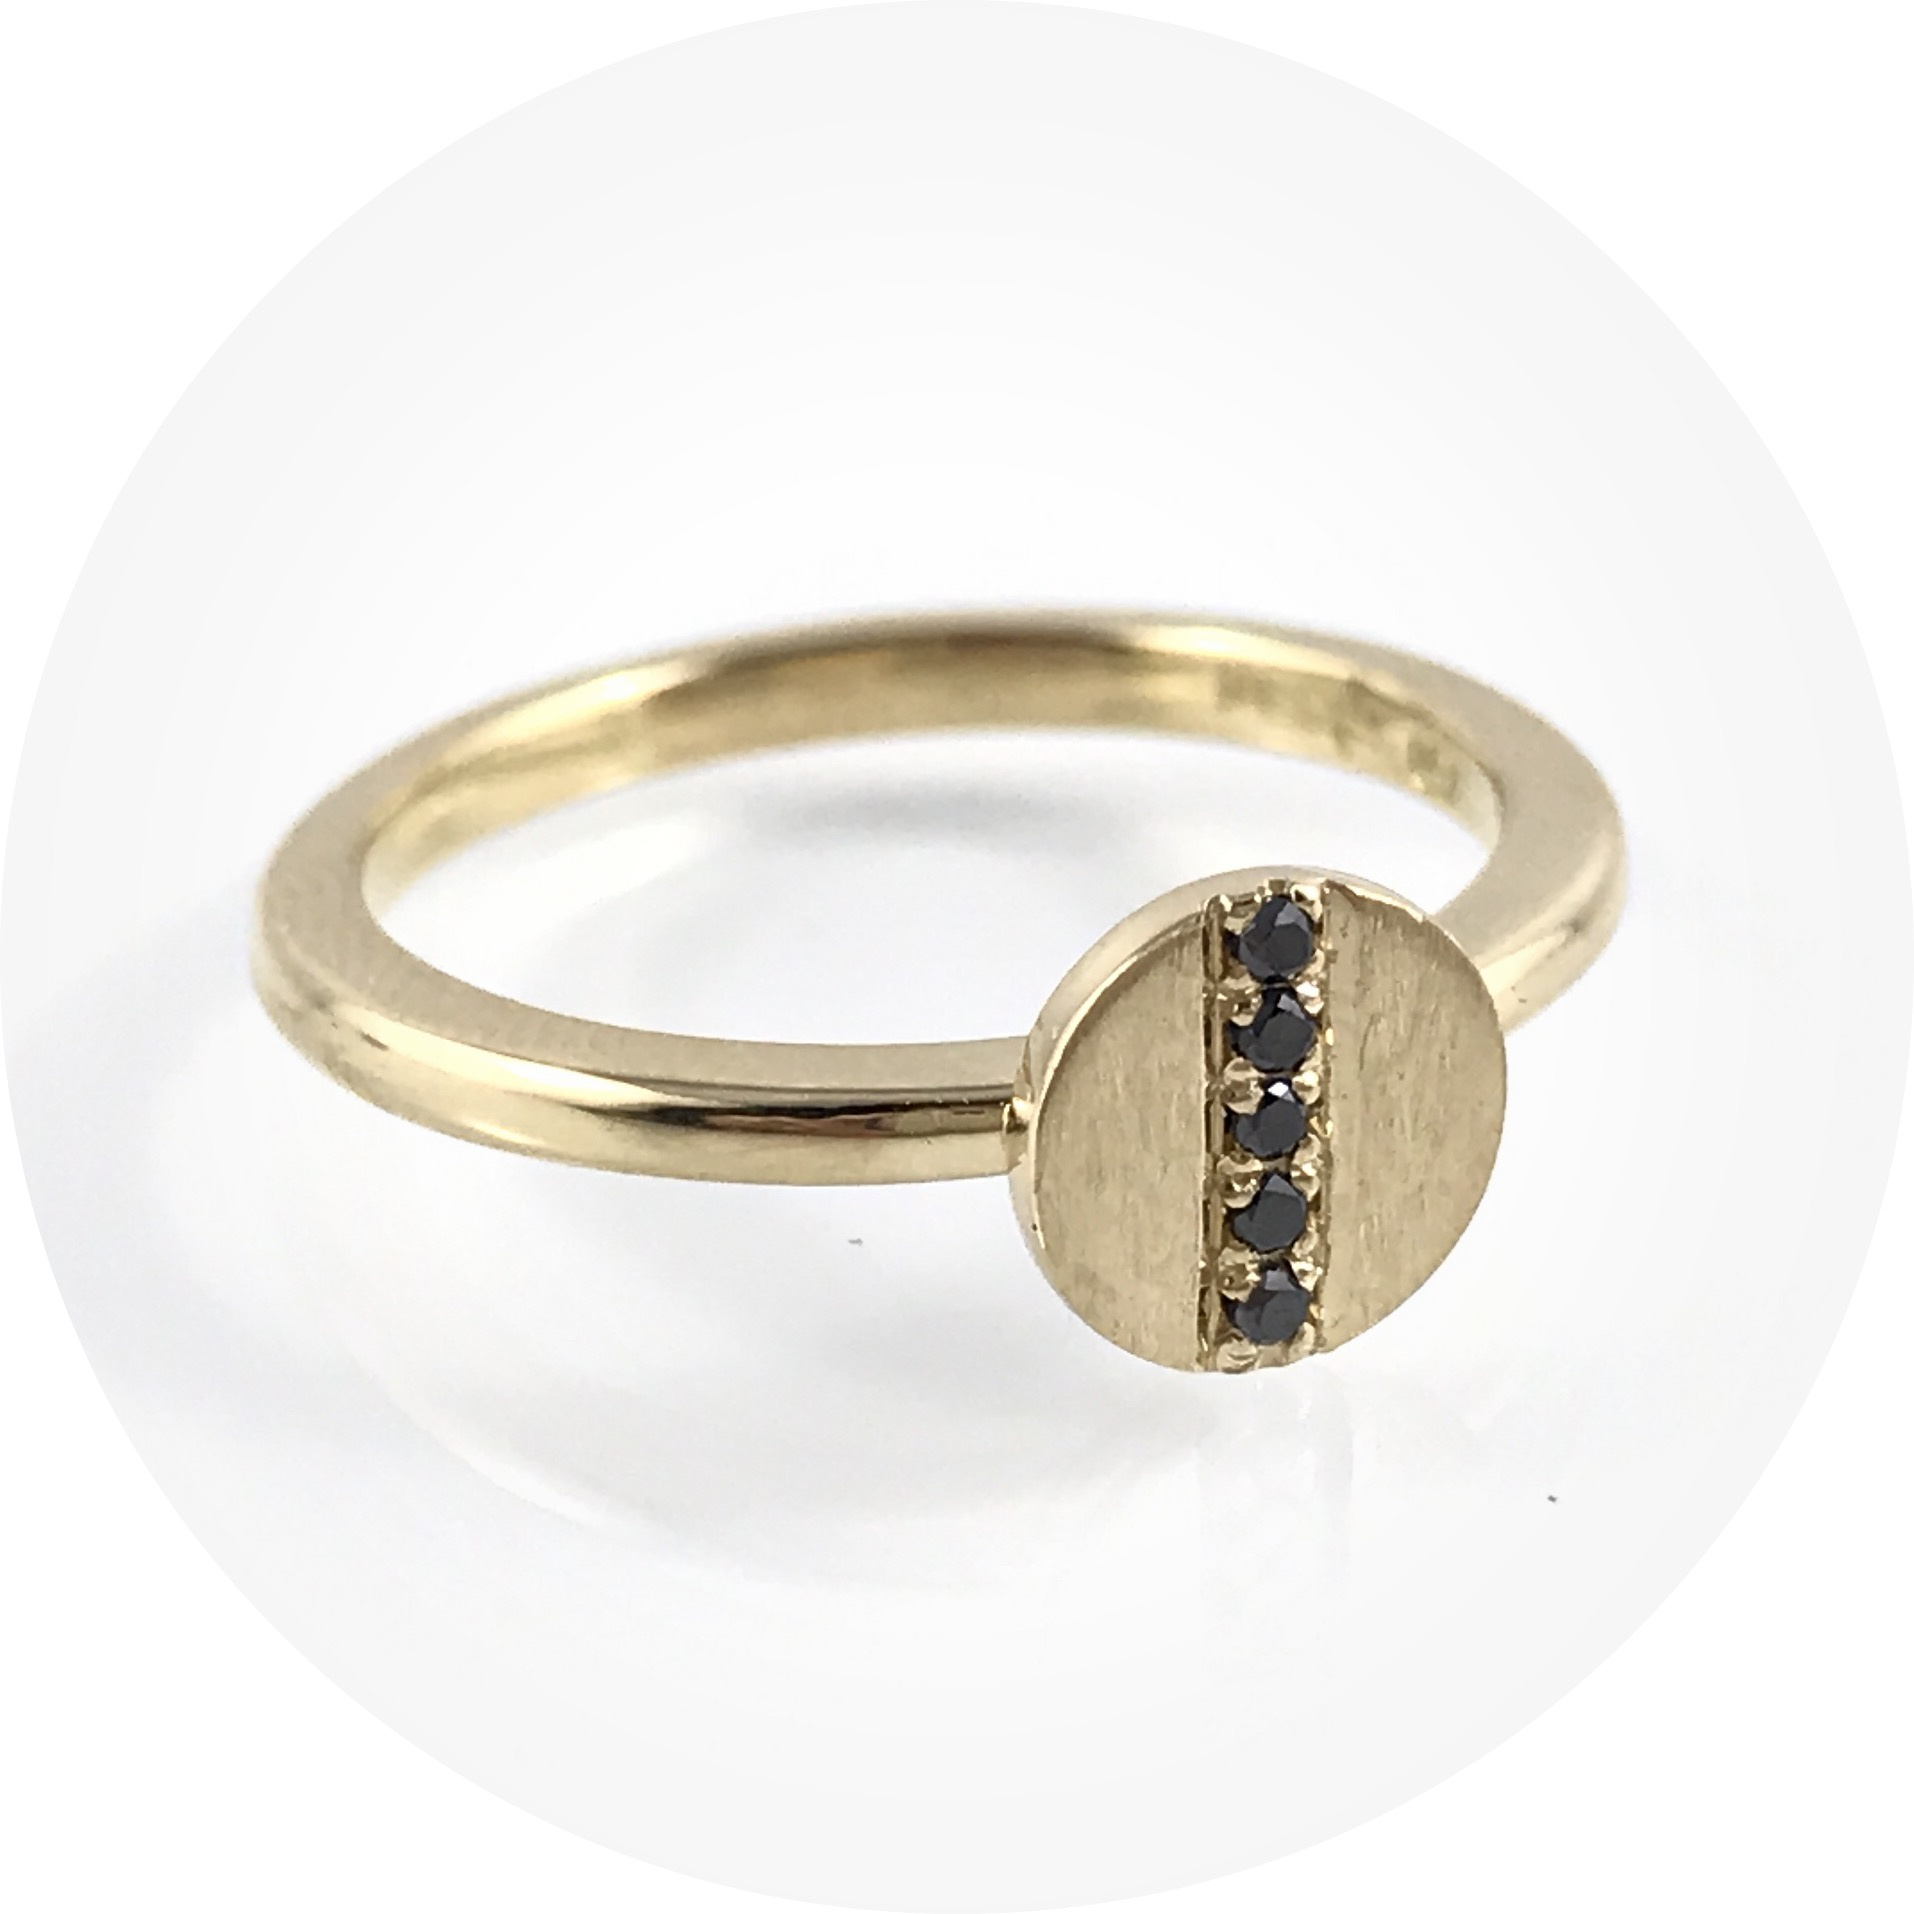 Angela Natalier- All in a Row ring. 18ct yellow gold, black diamonds. Size L.